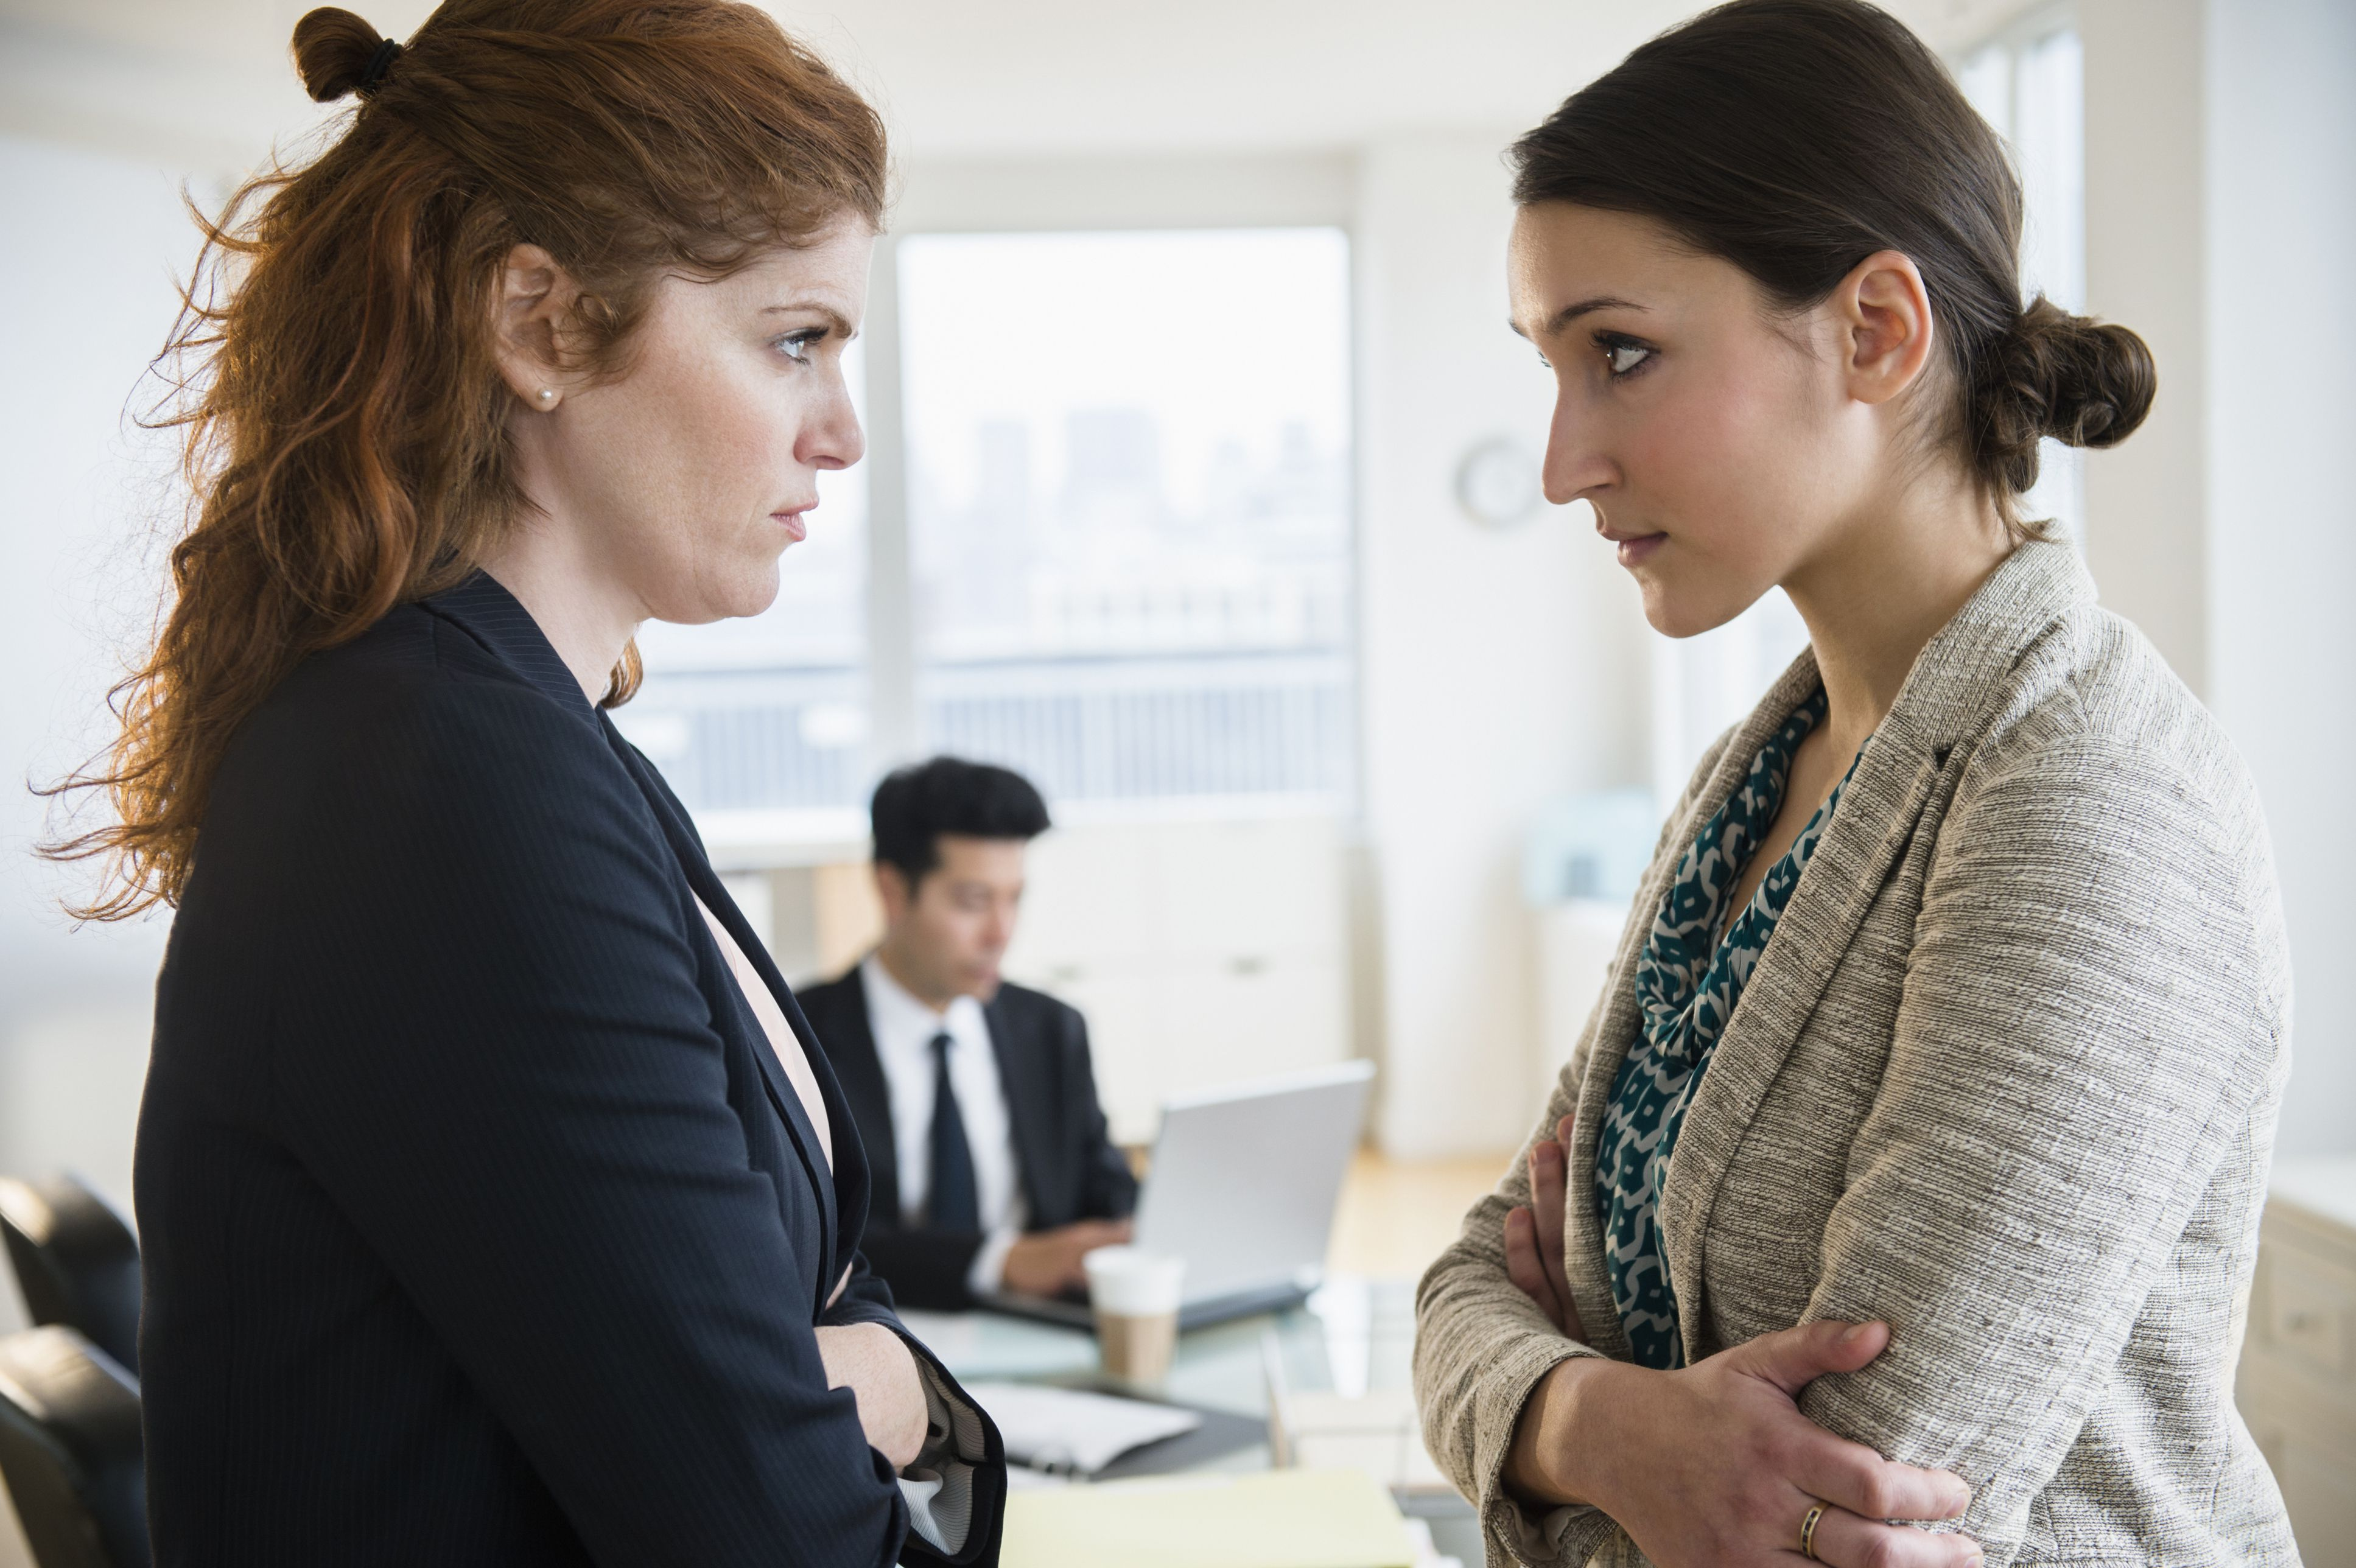 Two women facing off in a meeting